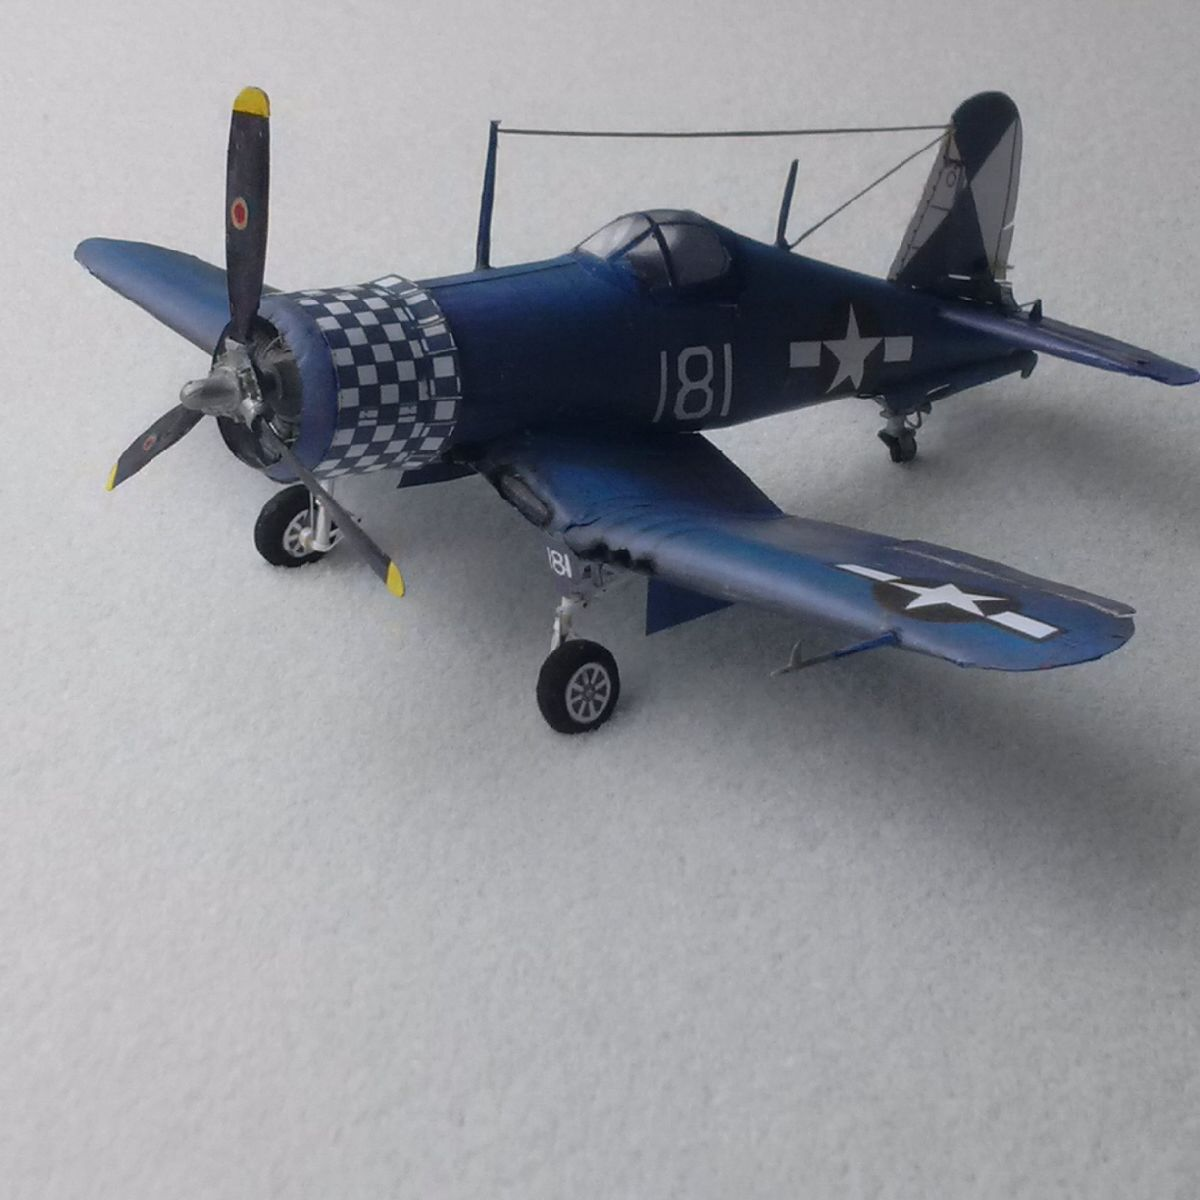 Vought's F4U Corsair probable winner